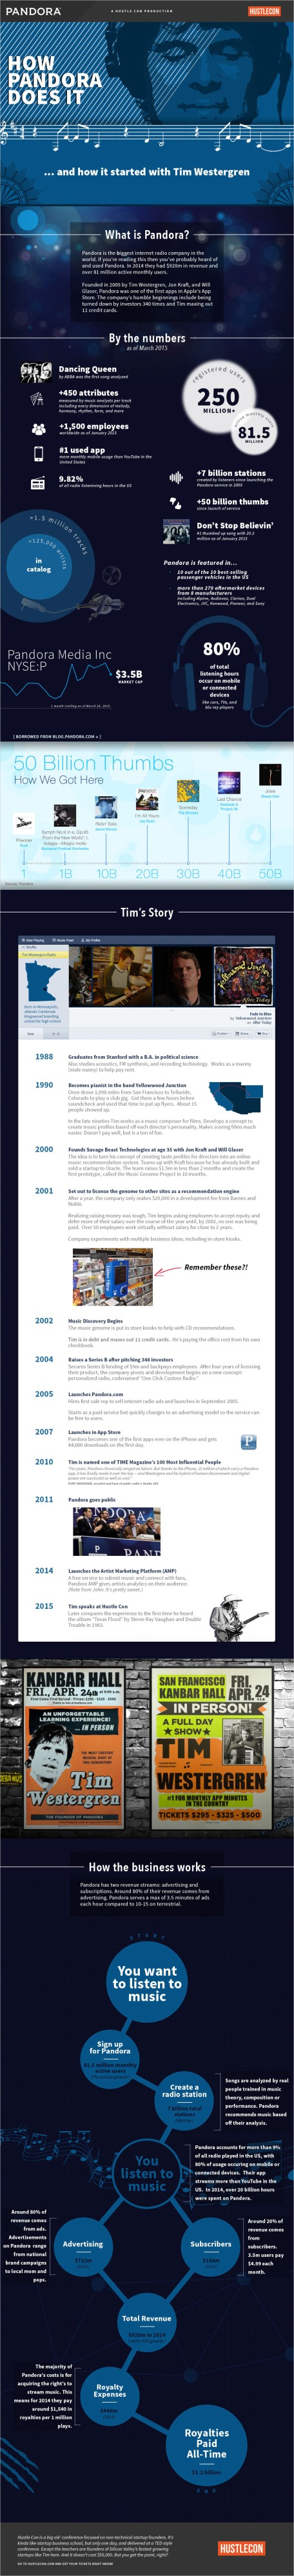 The Story Of Pandora Infographic